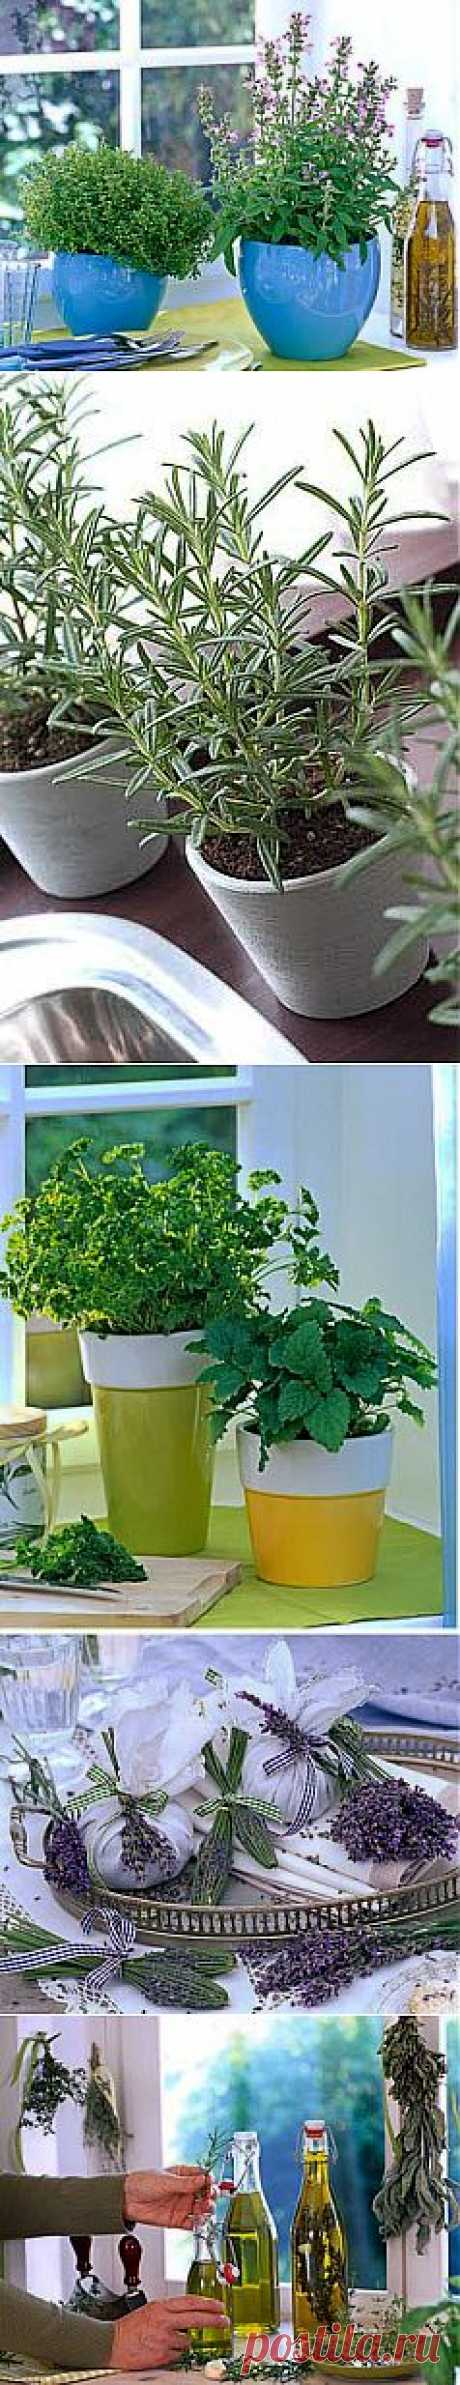 How to grow up spicy herbs on a window sill? | GreenHome